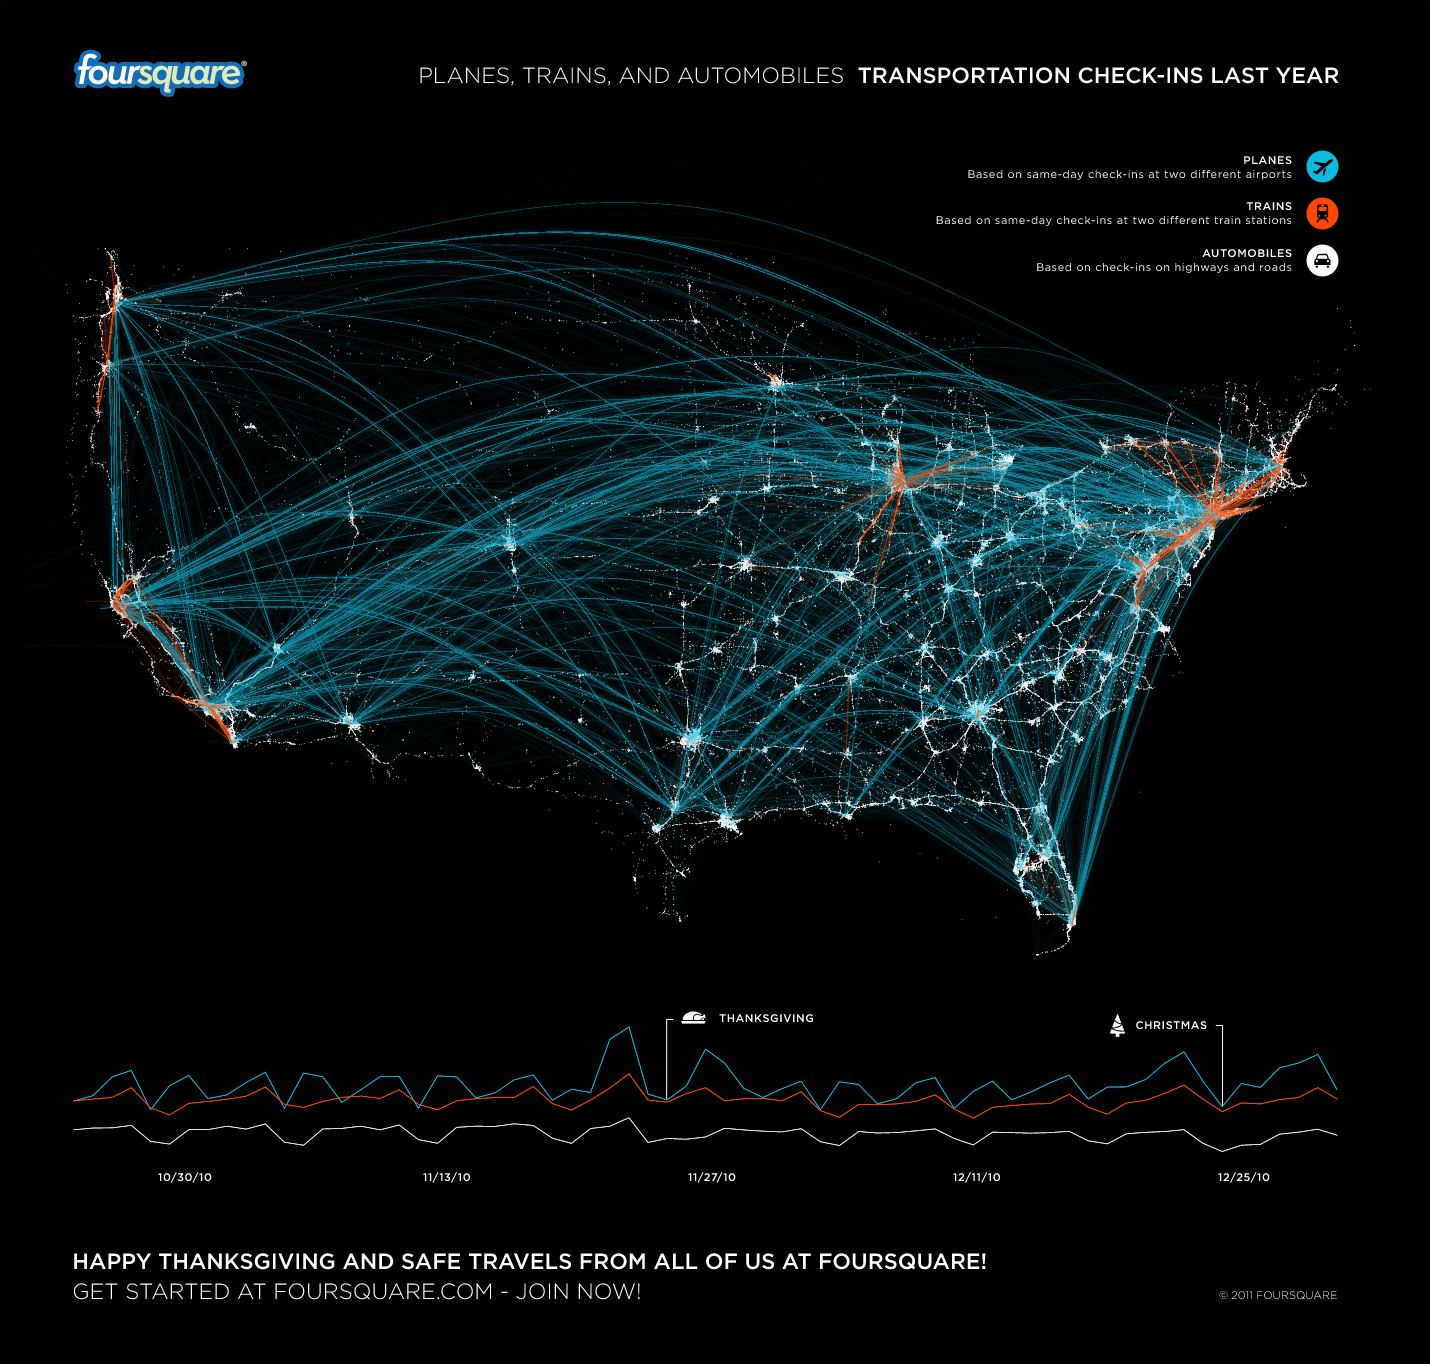 Foursquare, Twitter, Facebook, LinkedIn, Social Media, Holiday Travel